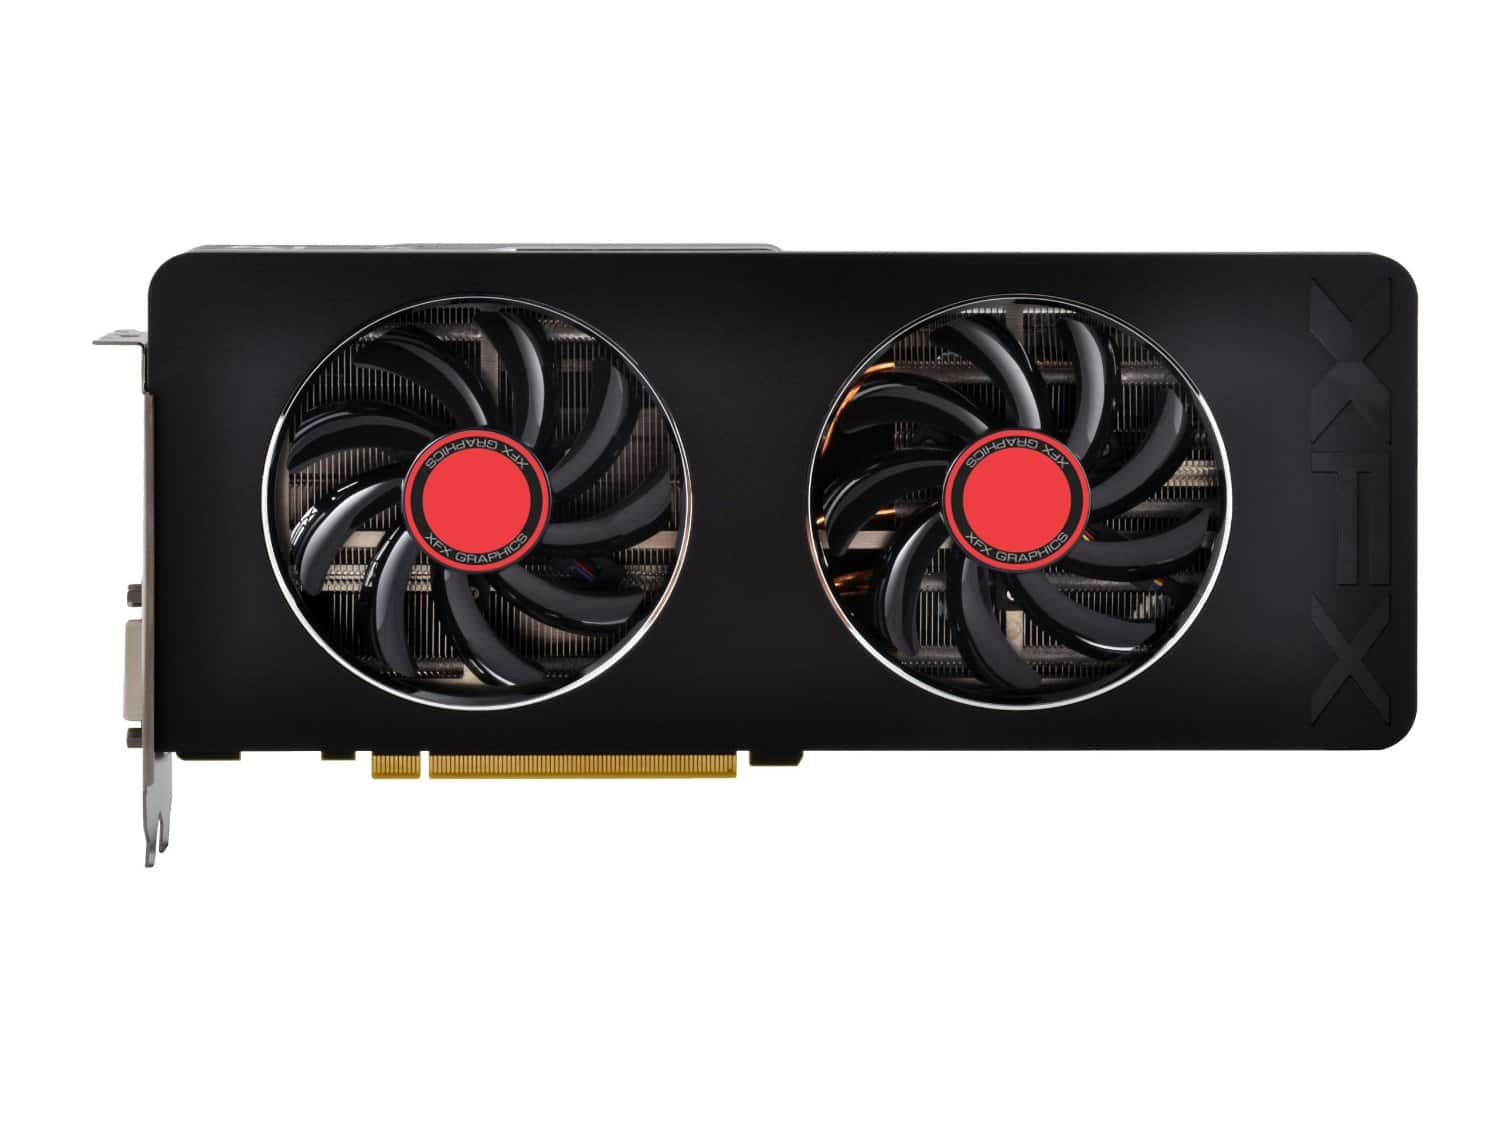 XFX Double D Radeon R9 280 3GB GDDR5 Video Card  $160 after $20 Rebate + Free Shipping